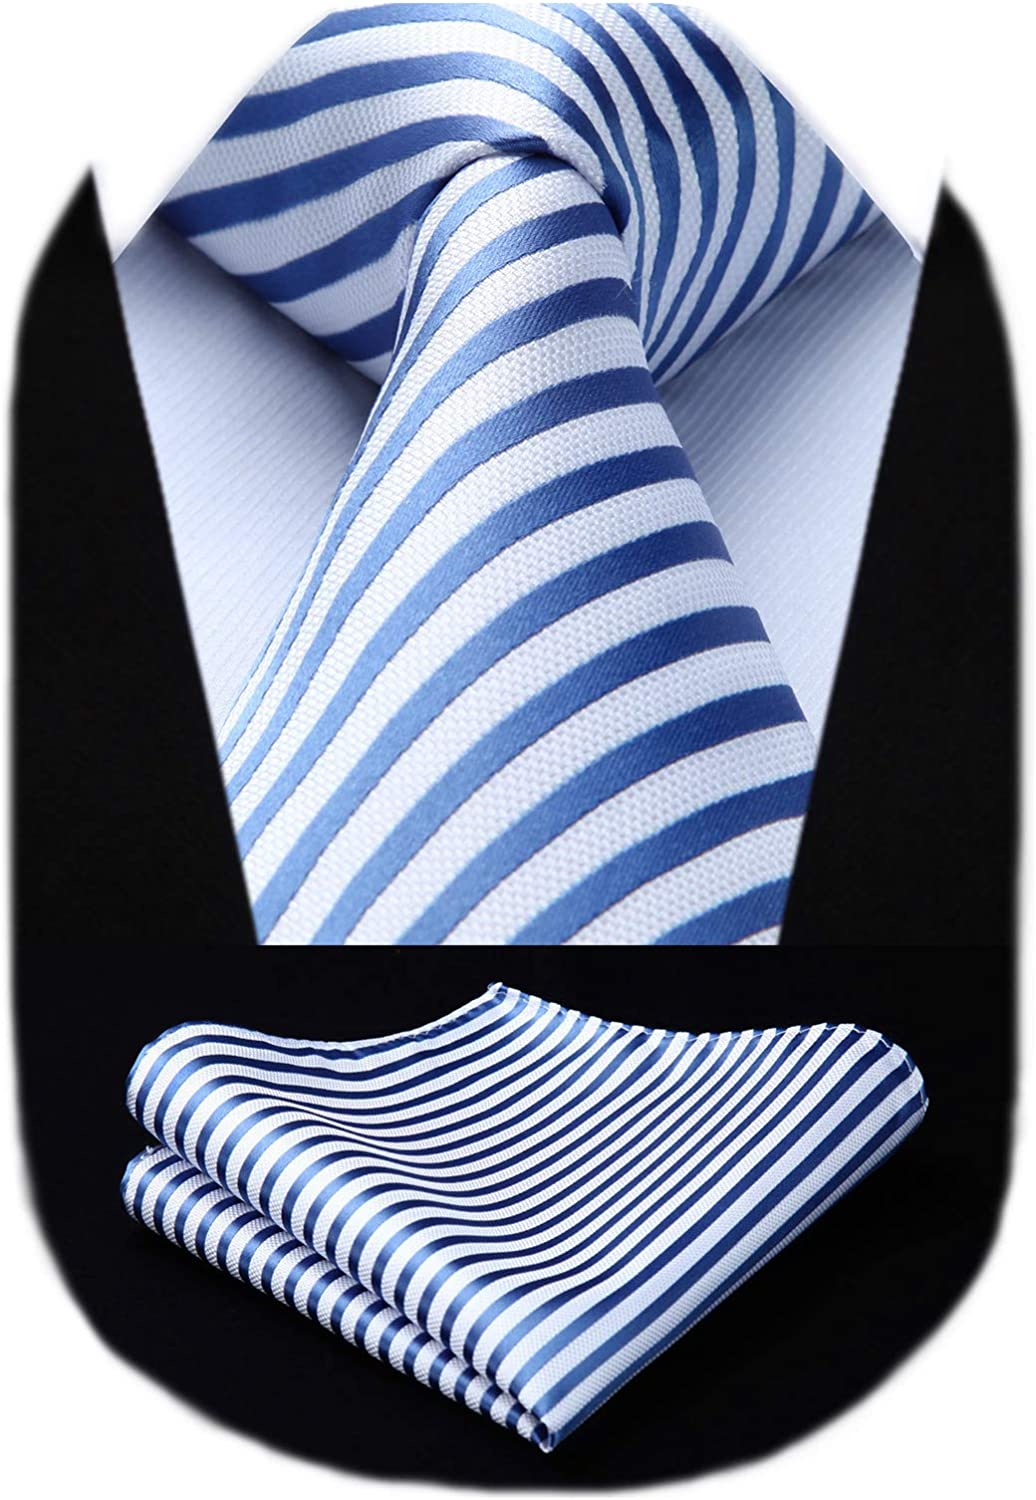 HISDERN Baltimore Mall Men's Striped Tie Woven Classic With Poc Men for High order Necktie